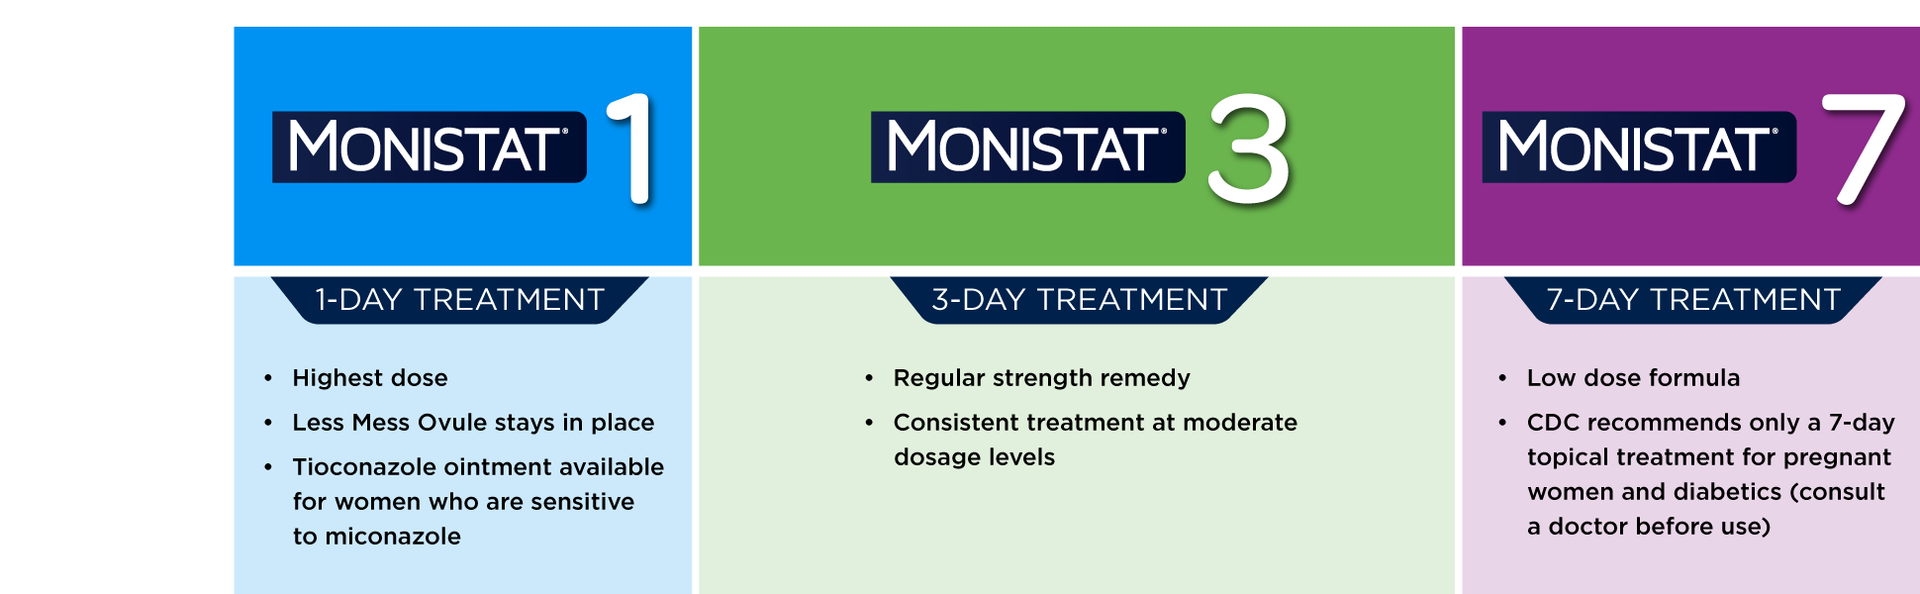 Monistat 7 7-Day Yeast Infection Treatment